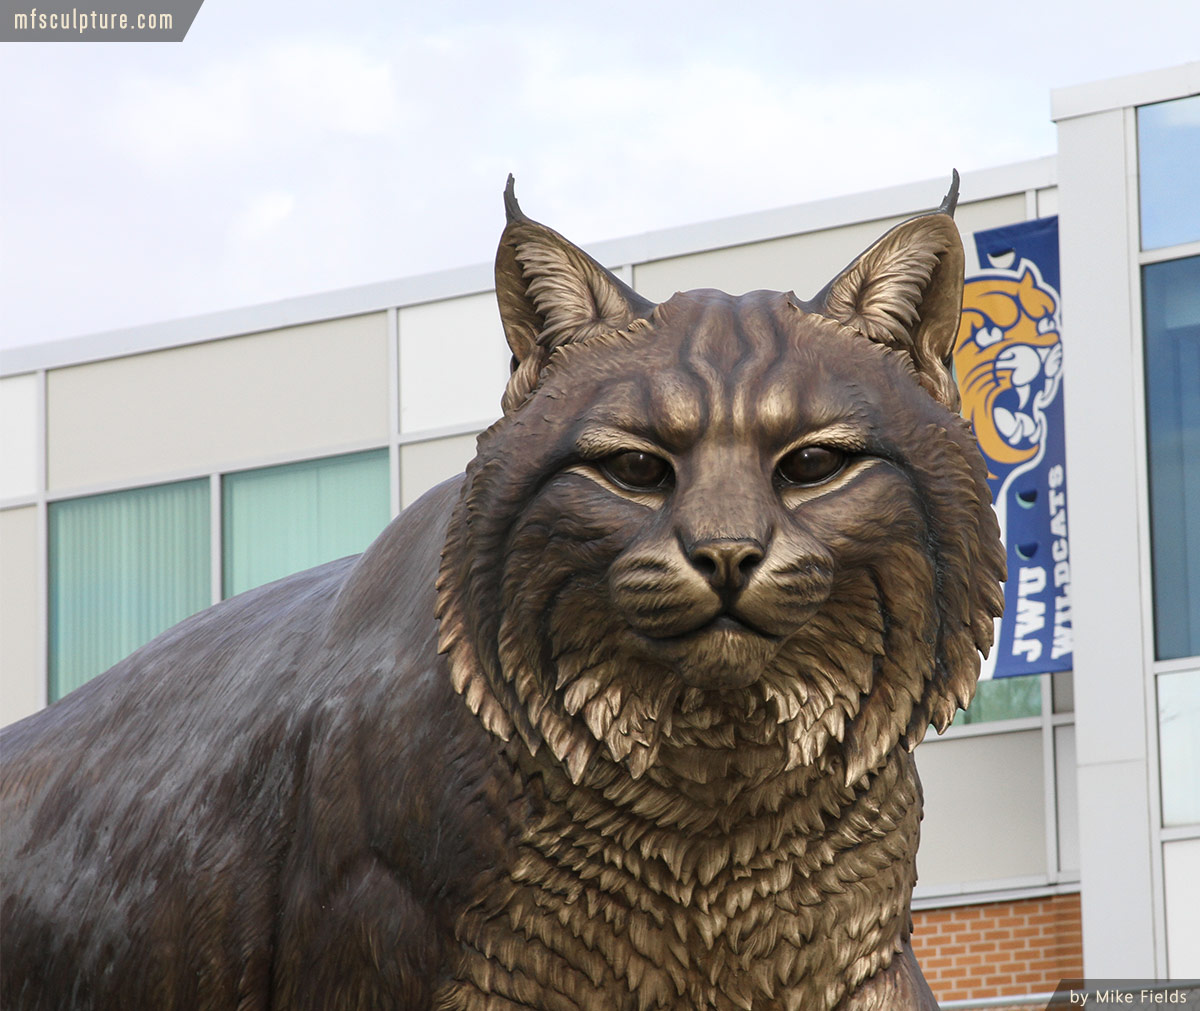 Wildcat Statue University Mascot Monument Public Art 2